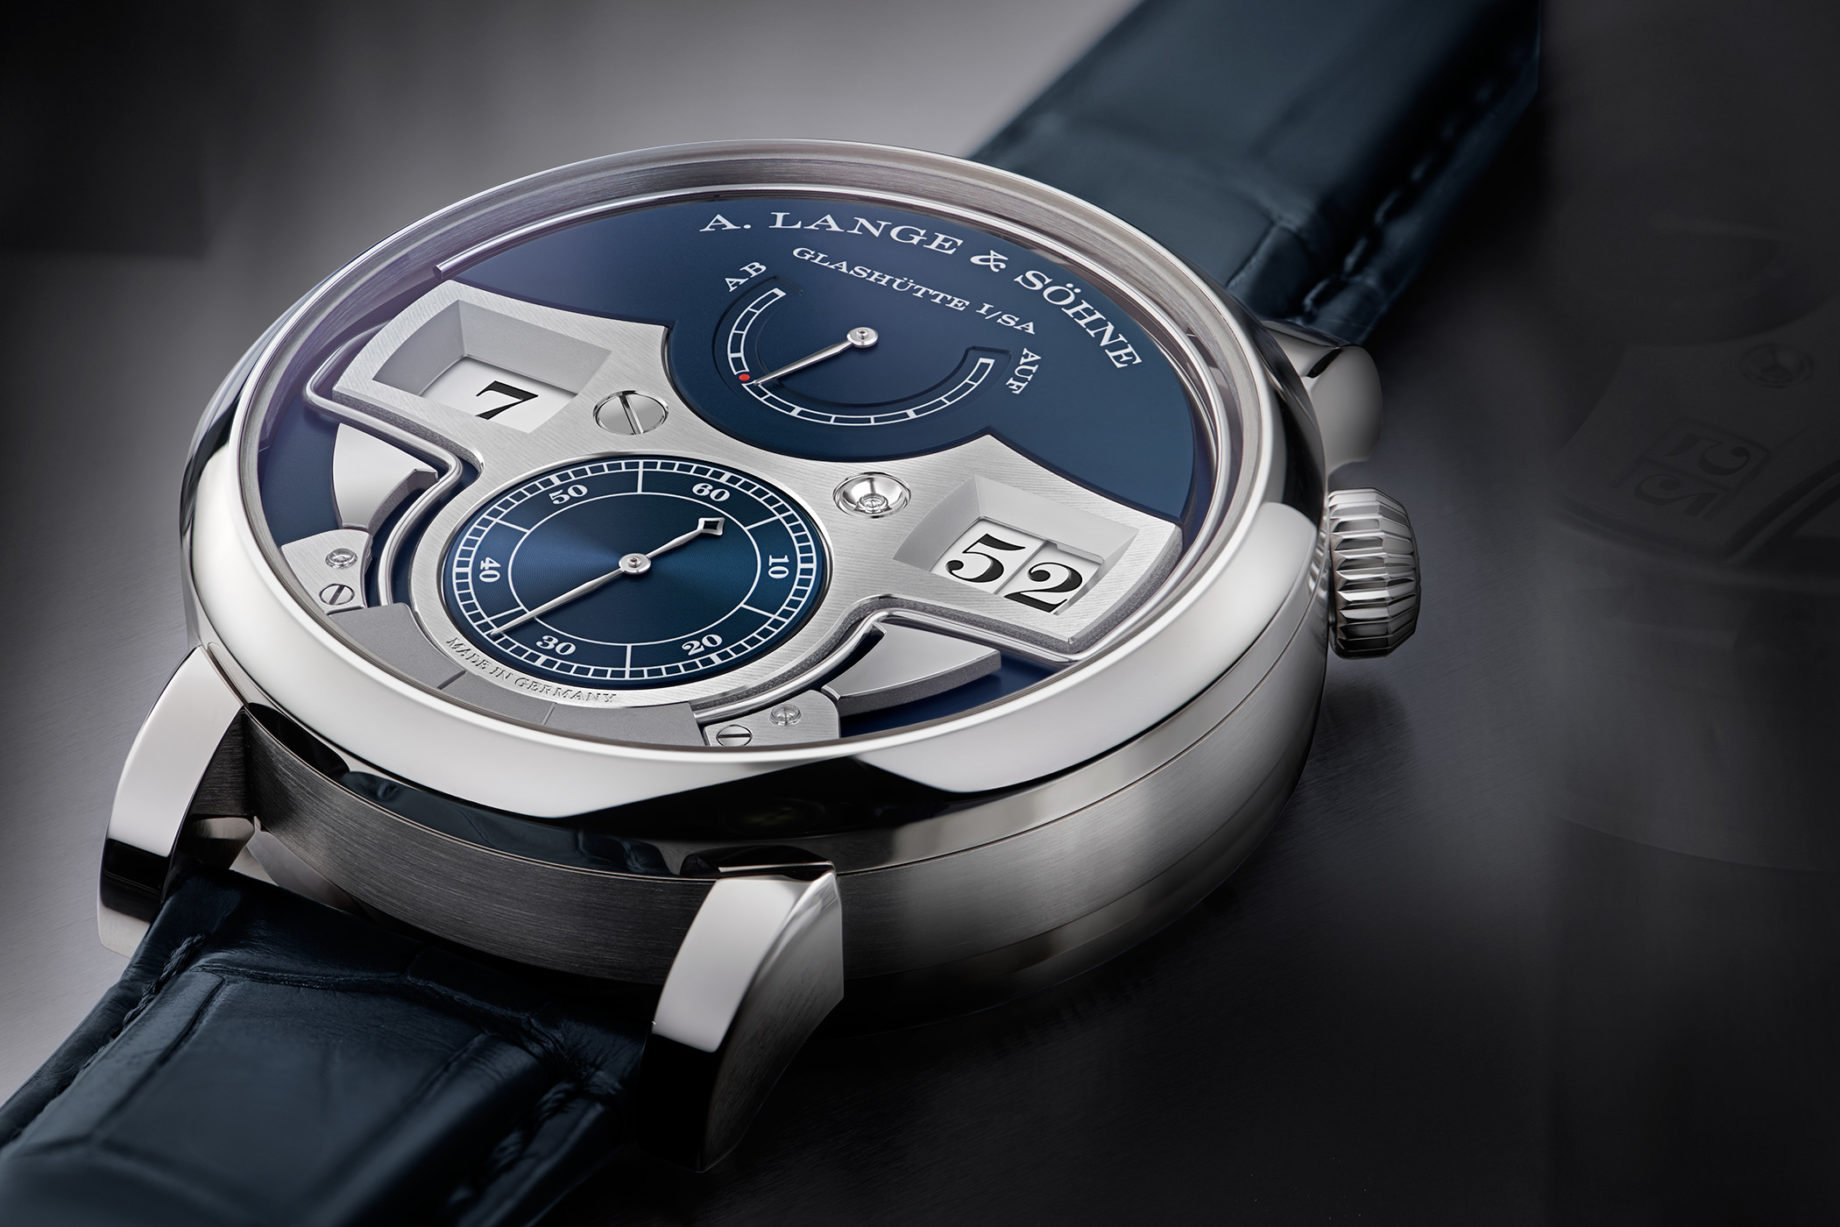 A. Lange & Söhne Zeitwerk Minute Repeater white gold